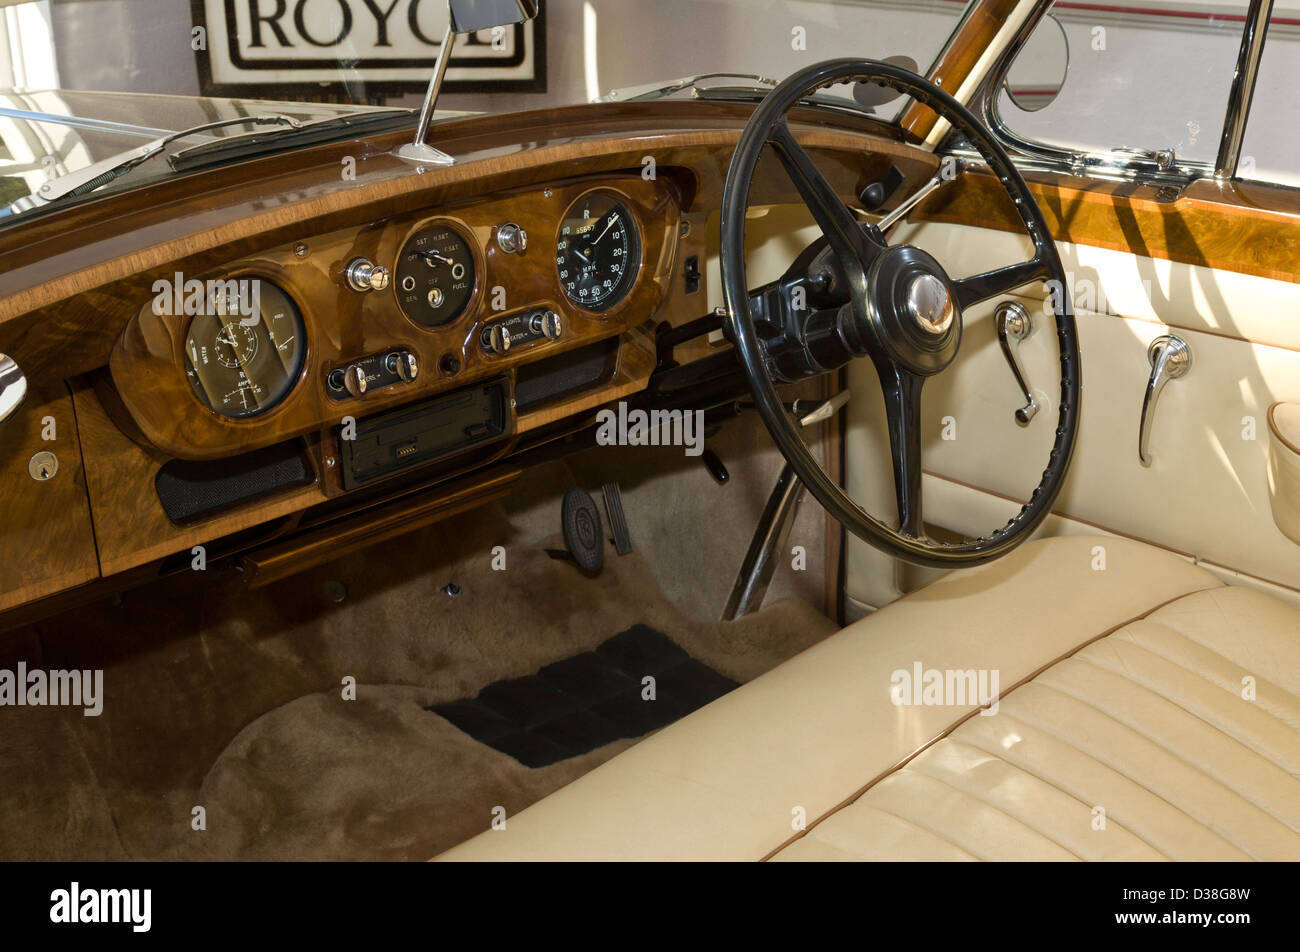 Interior Rolls Royce High Resolution Stock Photography And Images Alamy